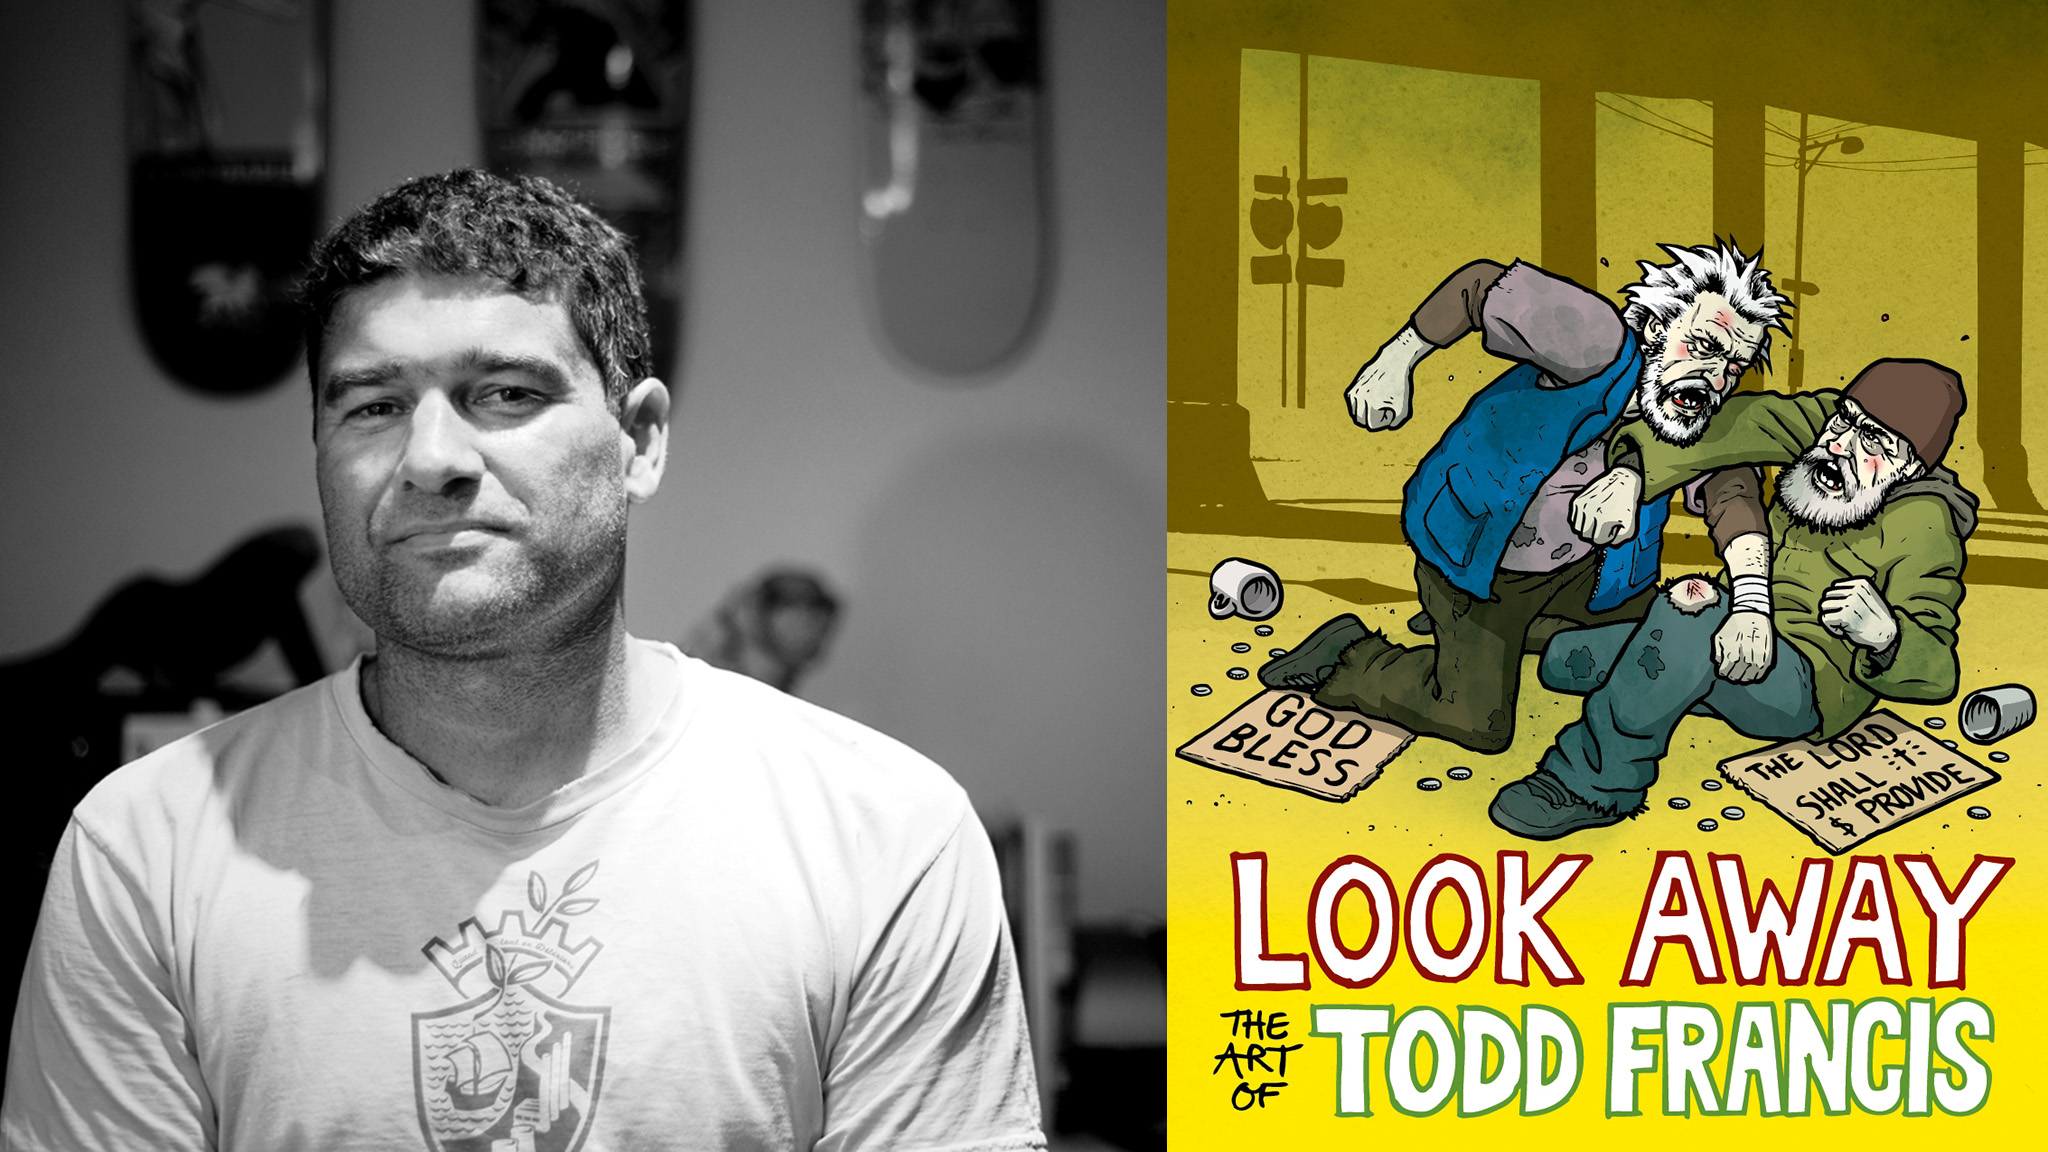 Artist Todd Francis (left) recently released his first collection of artwork, titled Look Away: The Art of Todd Francis.